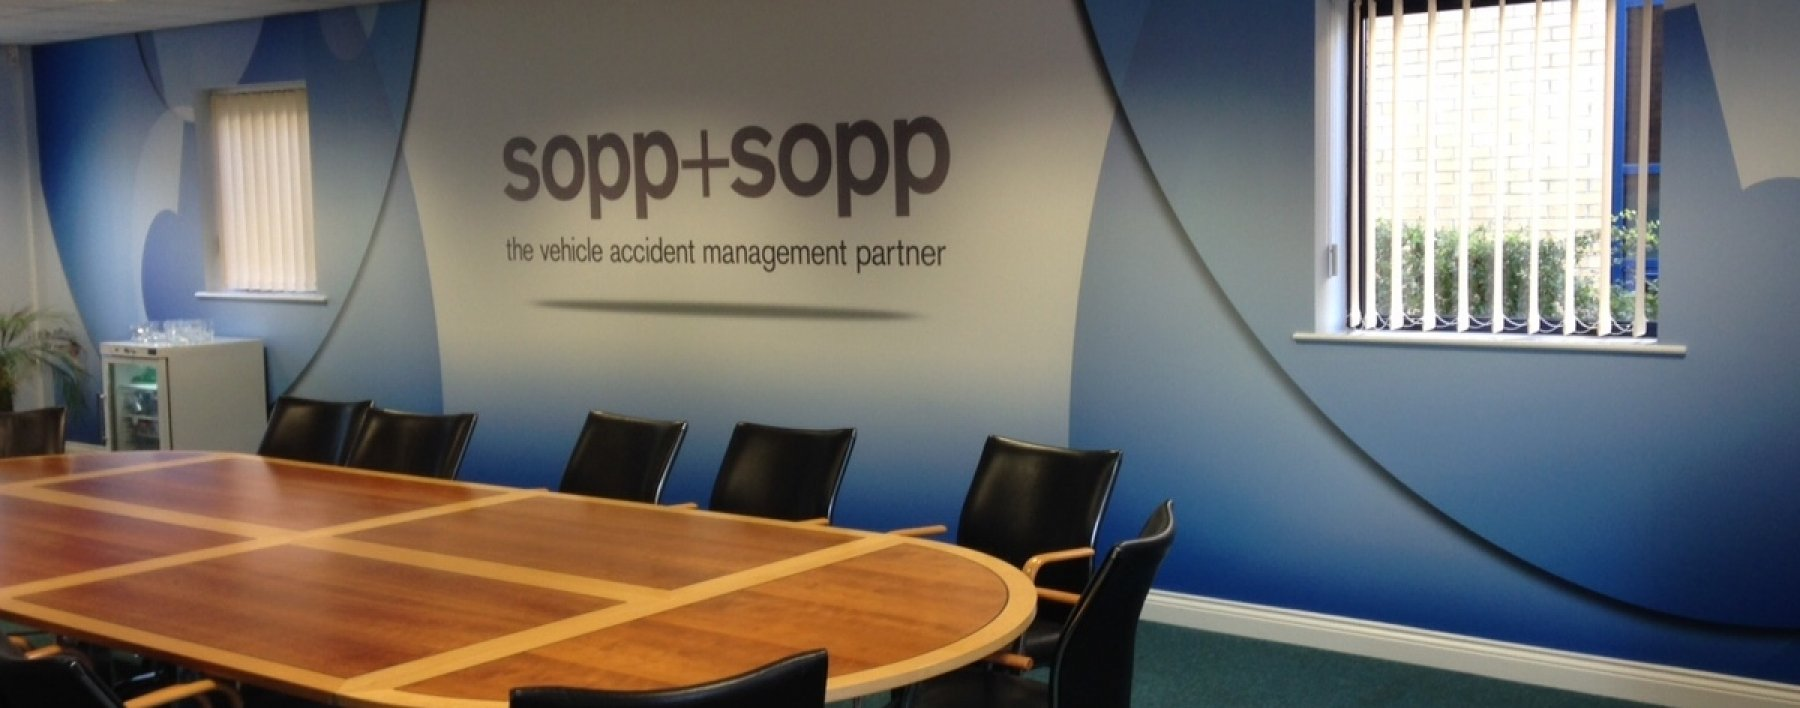 Sopp and Sopp building signage by Ast Signs